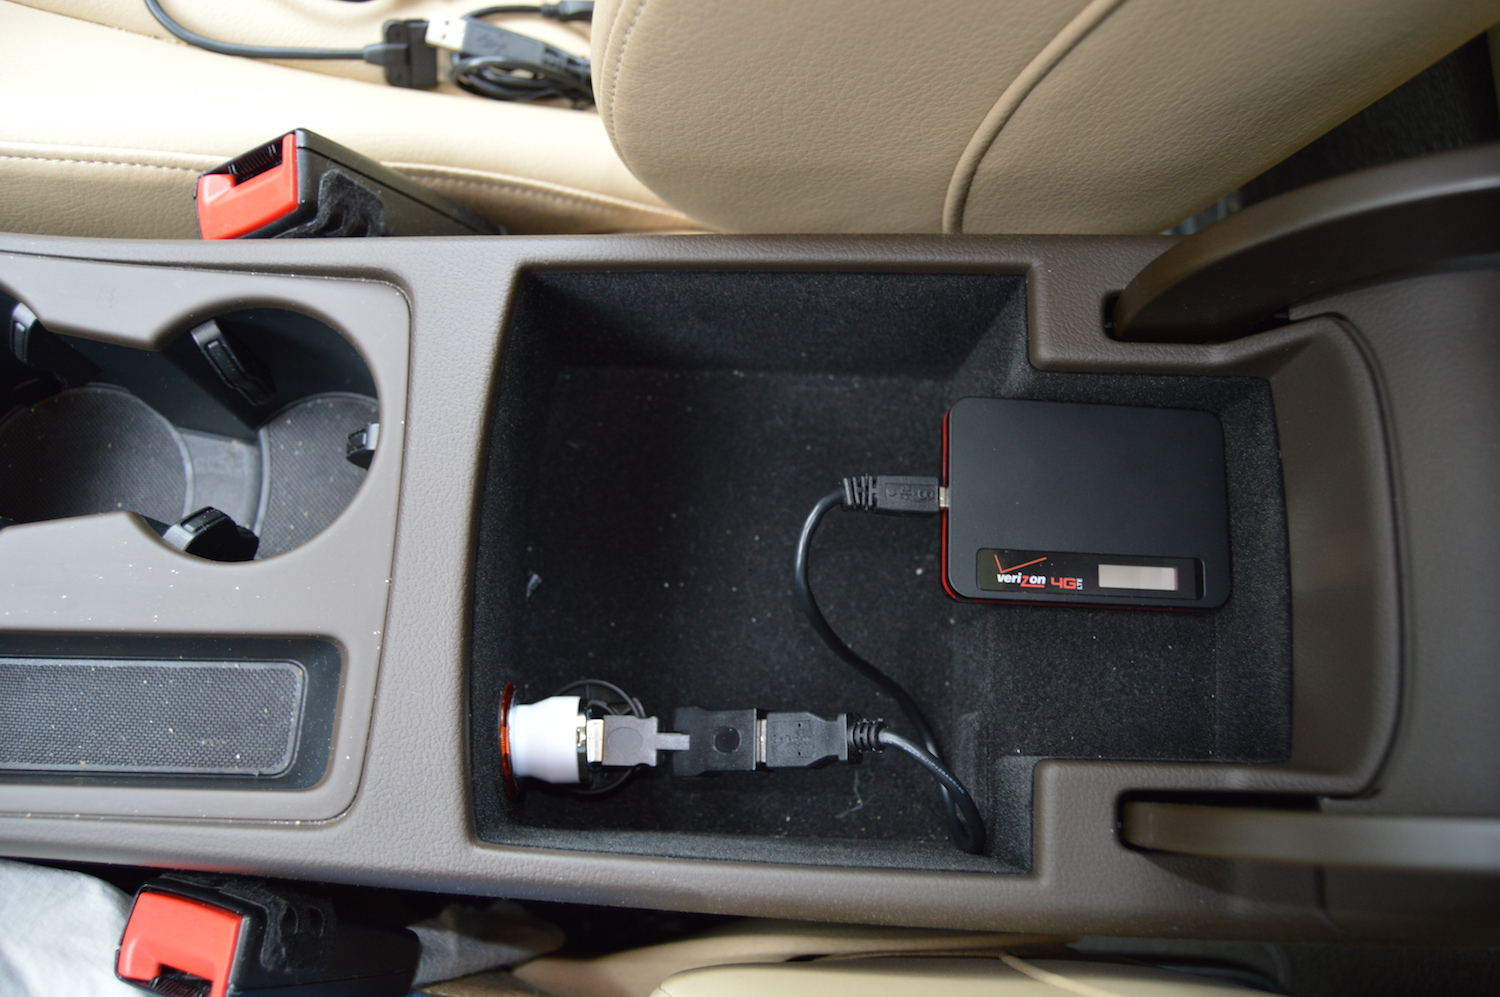 How To Make Your Car A Mobile Hotspot - GearBrain - Gearbrain